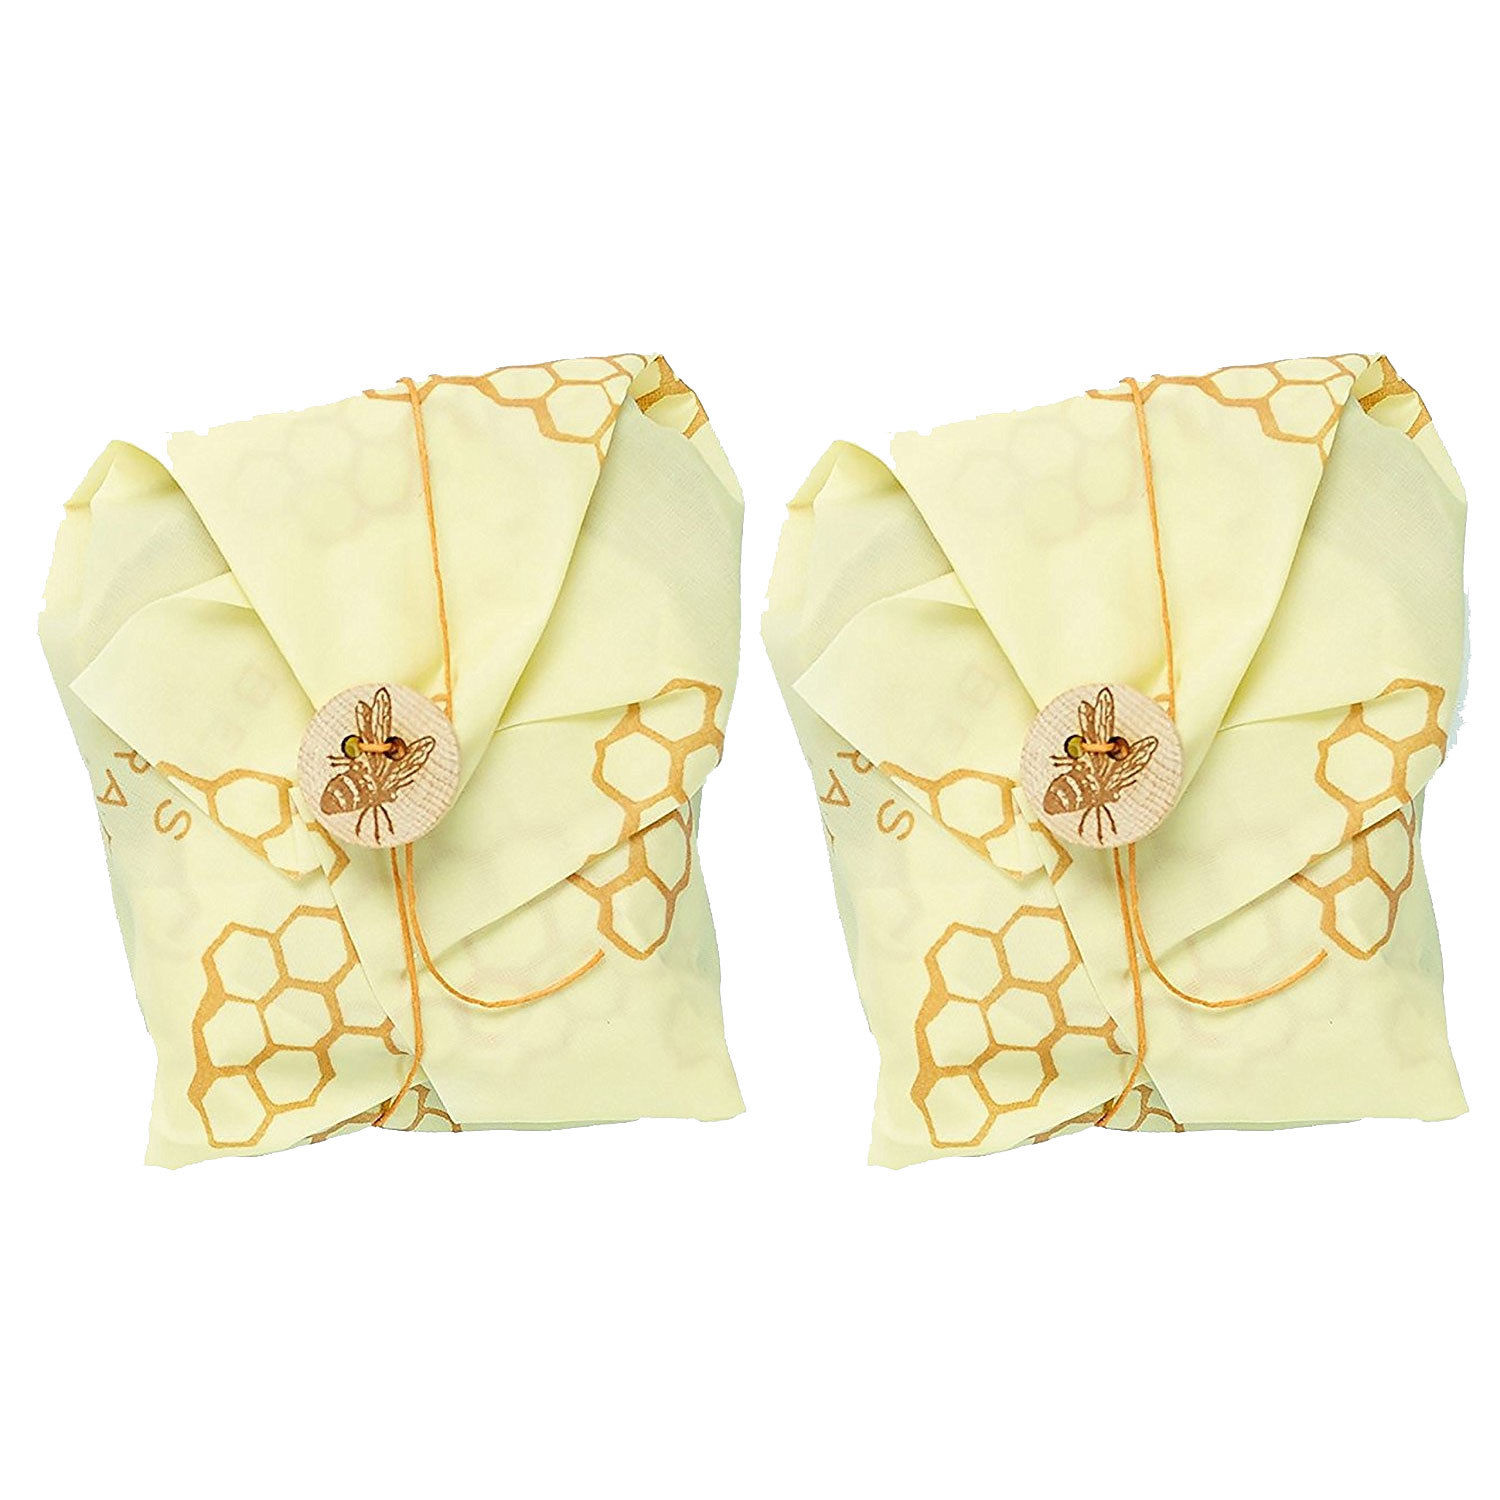 Bee's Wrap Sustainable Reusable Single Sandwich Wrap by Bee's Wrap